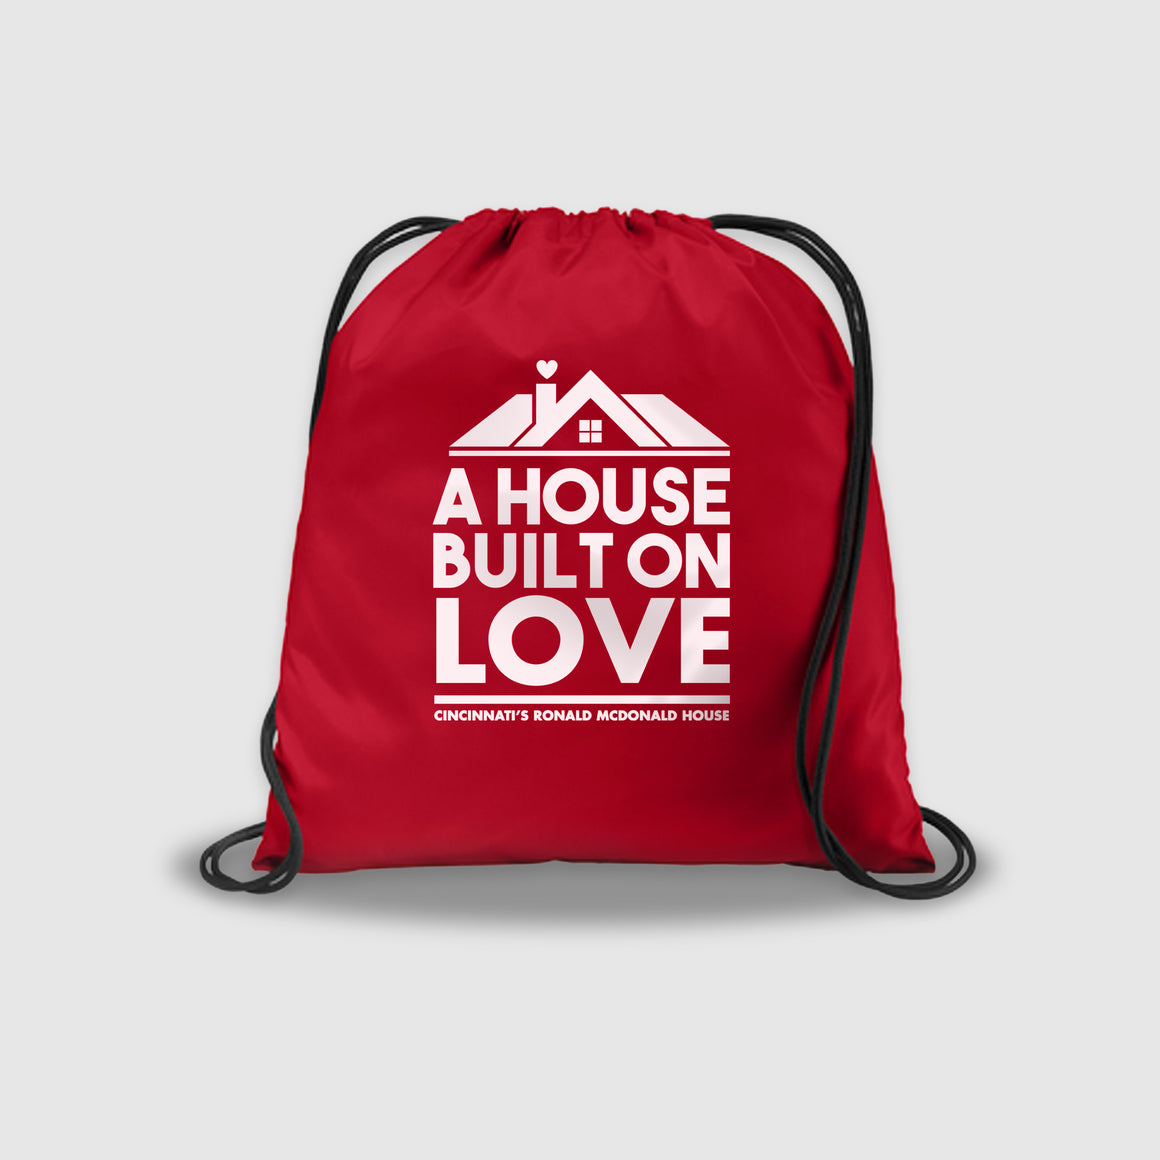 A House Built On Love - Ronald McDonald House Charity Drawstring Backpack - Cincy Shirts